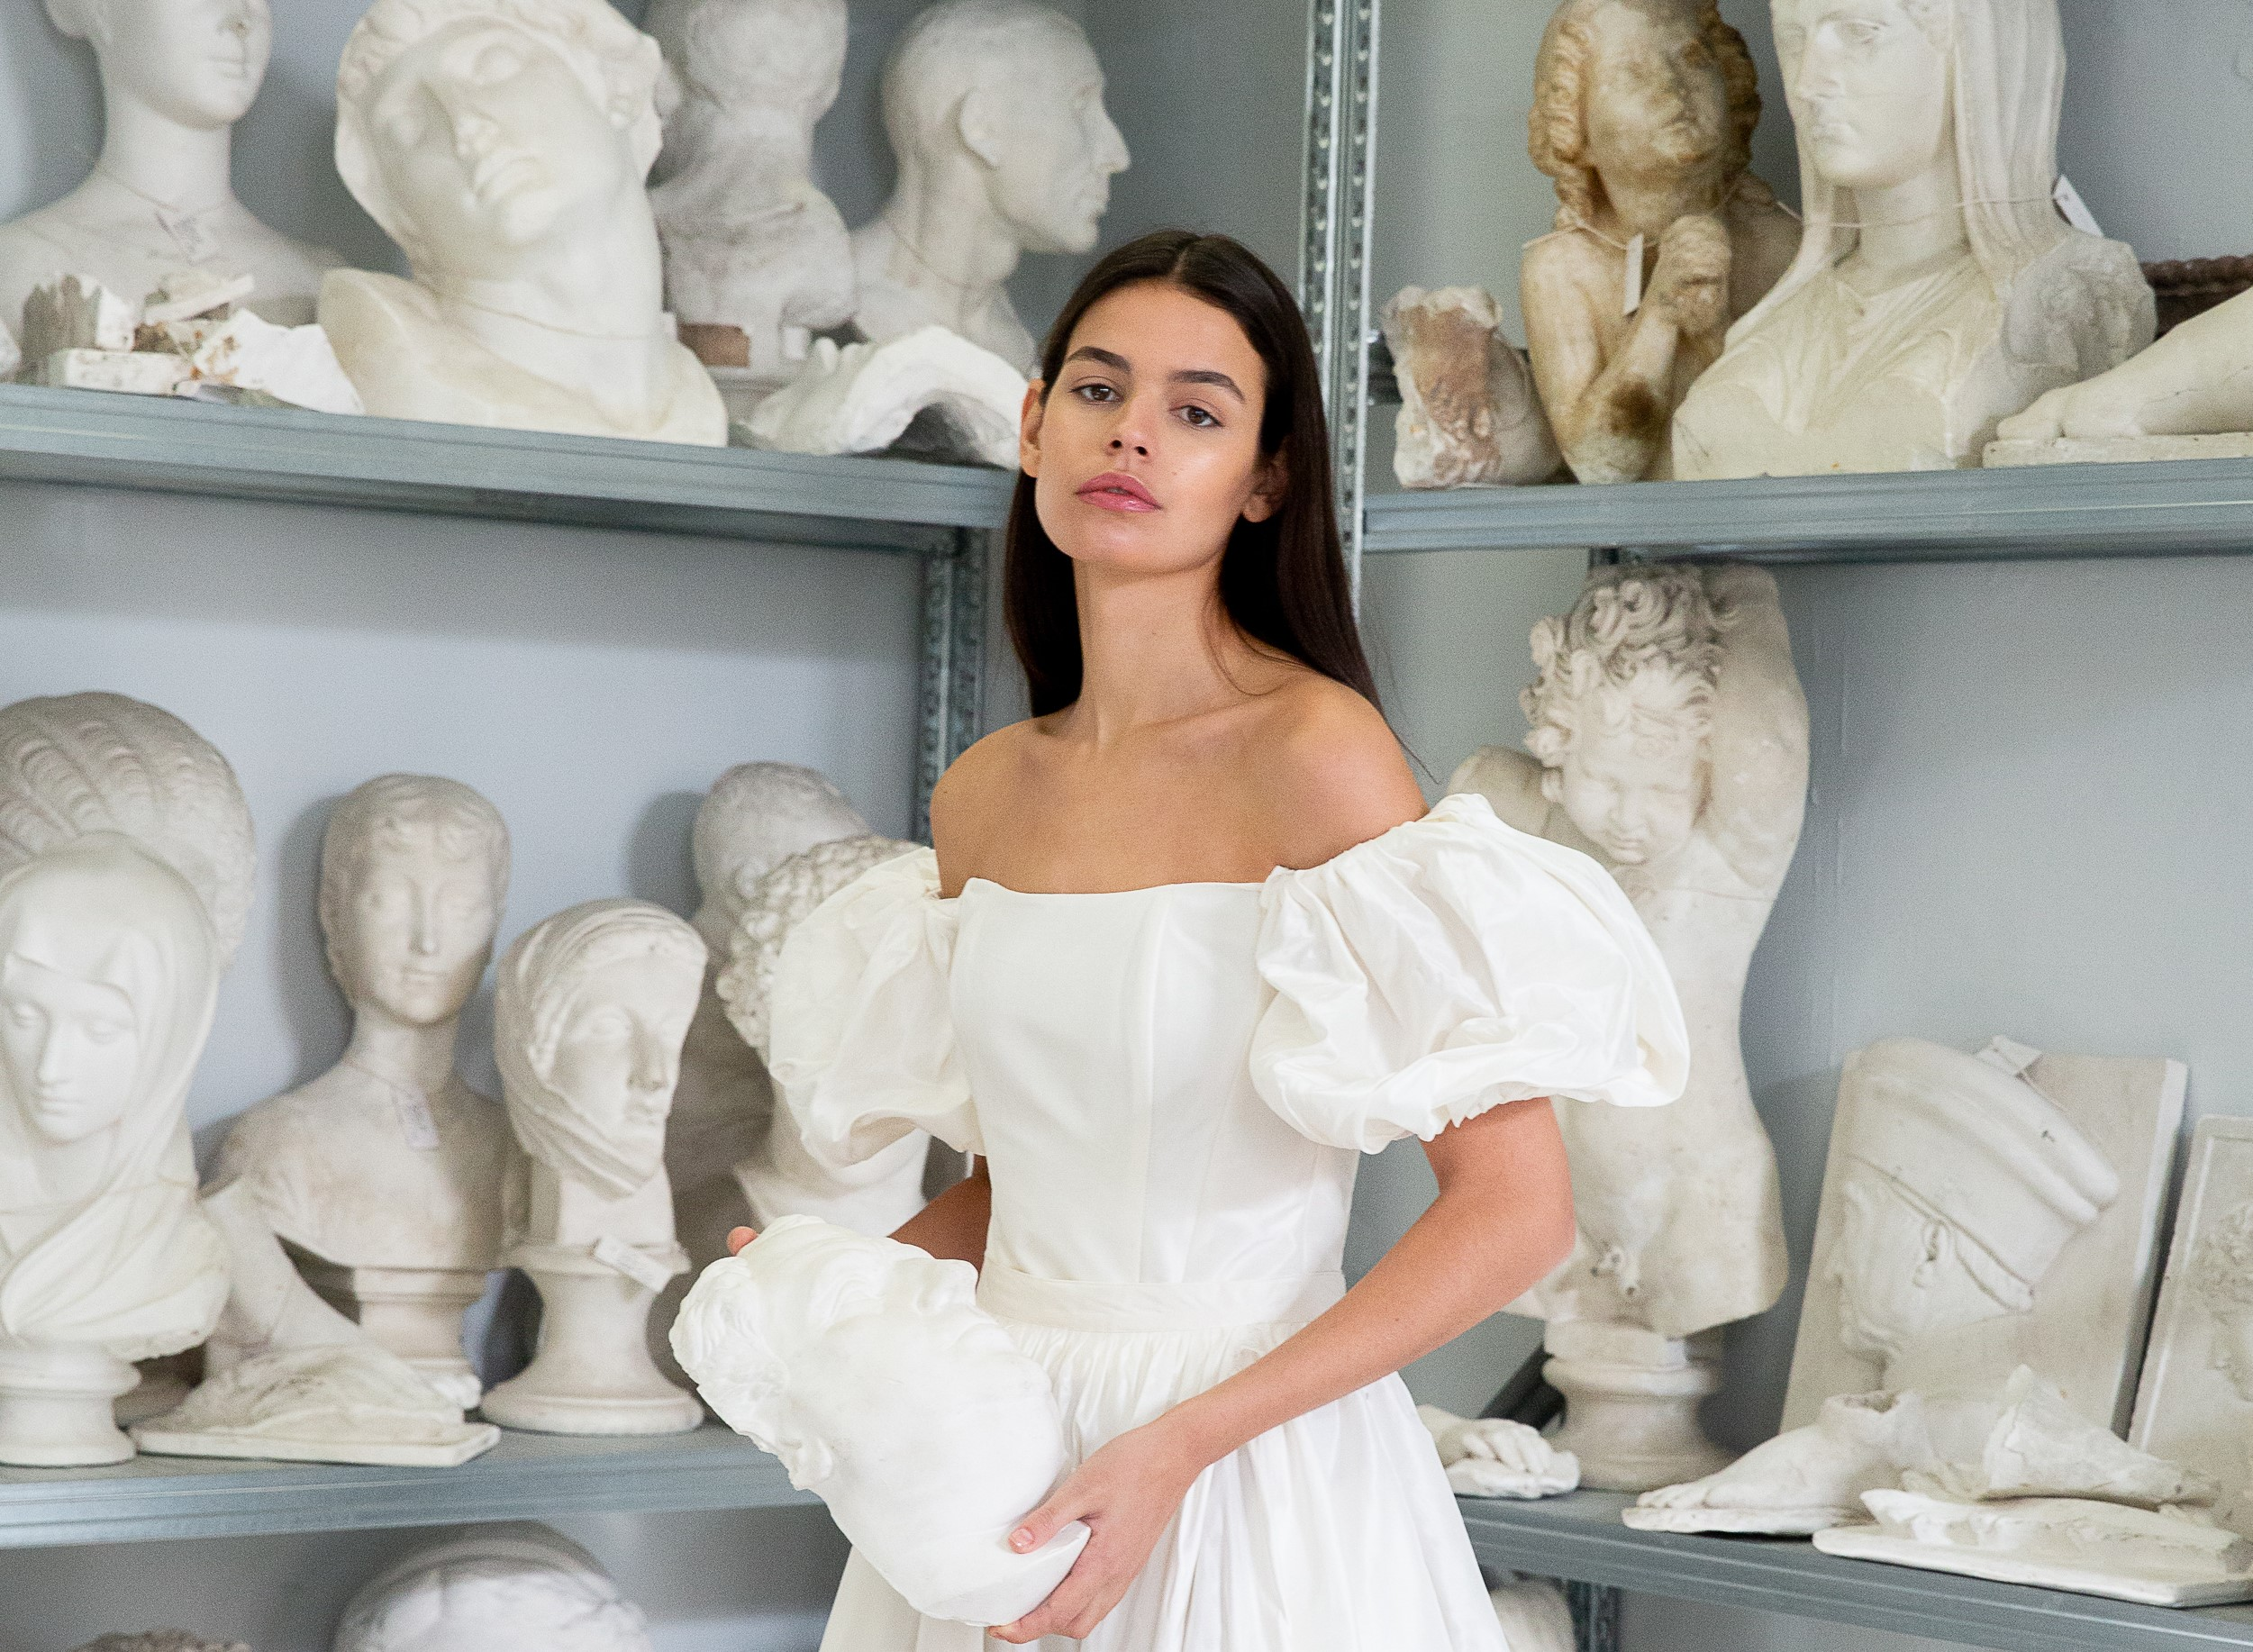 Watch: 'I wanted to dedicate my fashion collection to Malta' – Diane de Malherbe